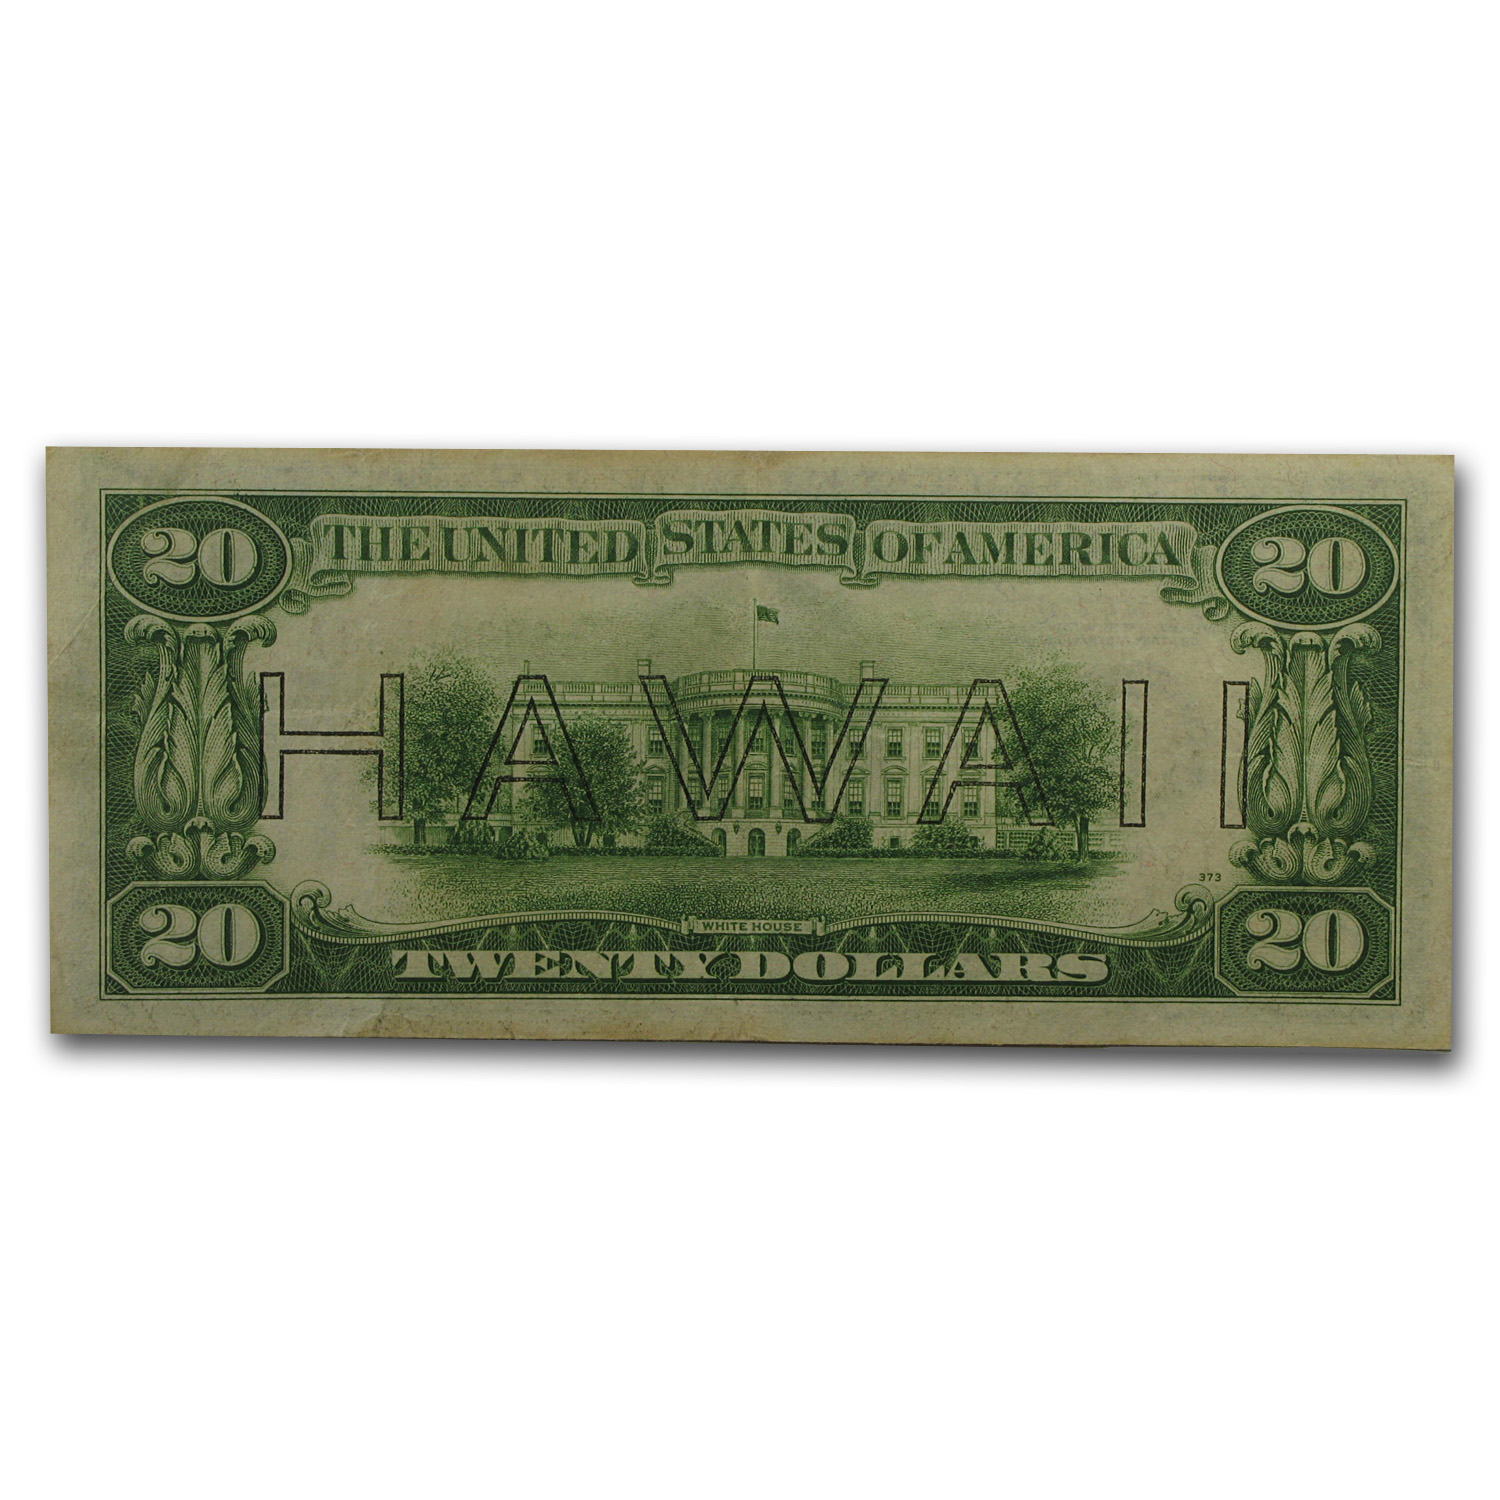 1934-A $20 FRN Brown Seal (HAWAII) (Very Fine)